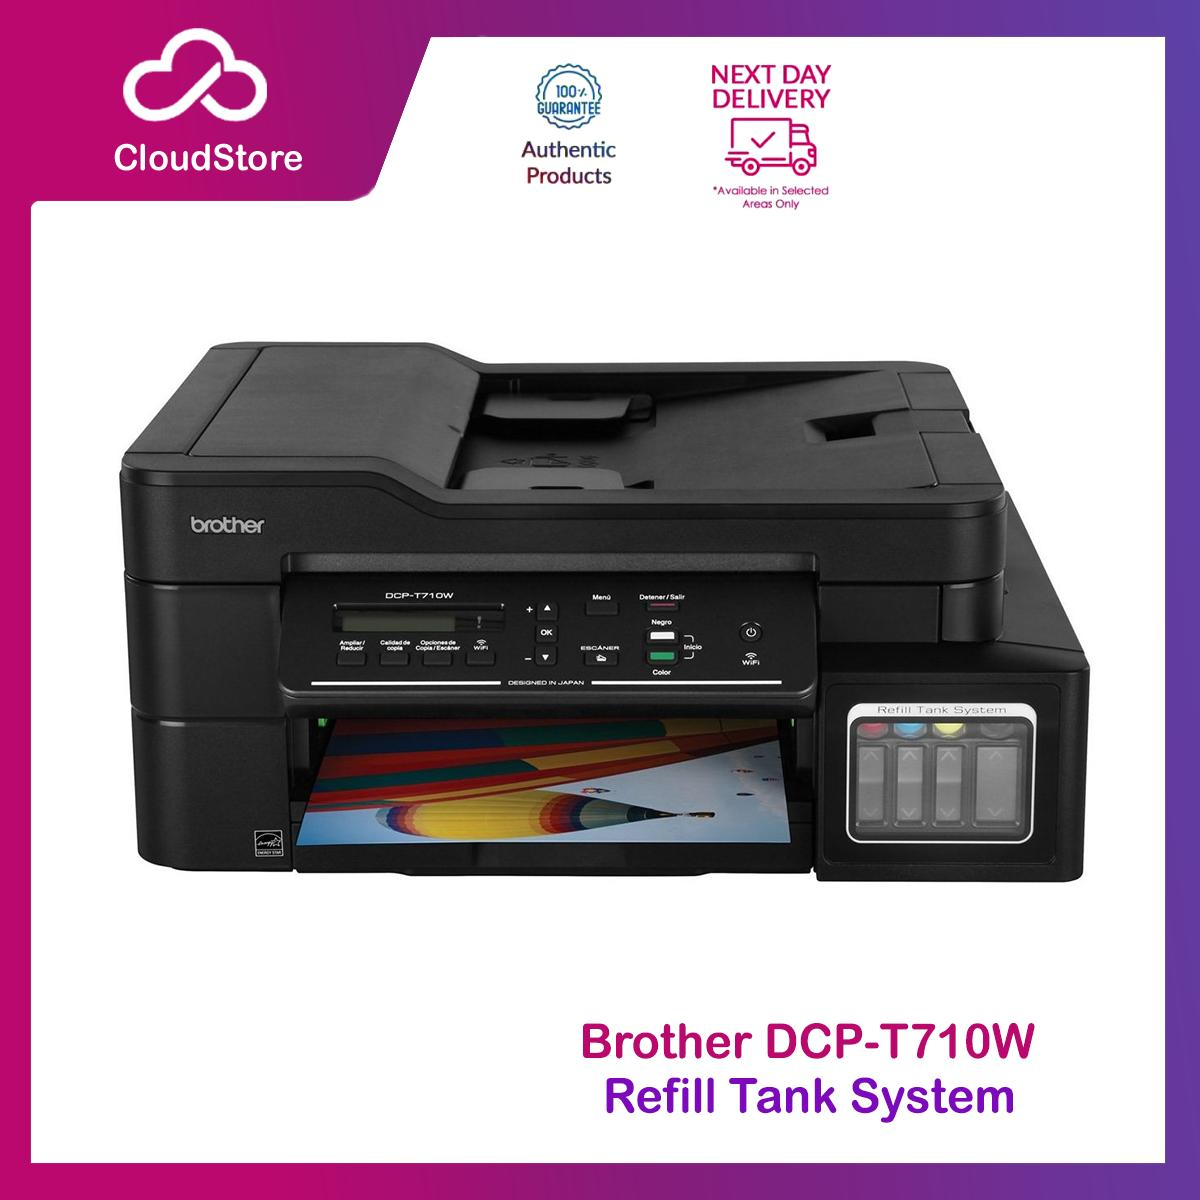 Brother DCP T710W All in 1 Refill Tank System Colored Printer Wifi, Mobile  Print Direct , ADF Print, Scan and Copy with Built-in Wireless Borderless